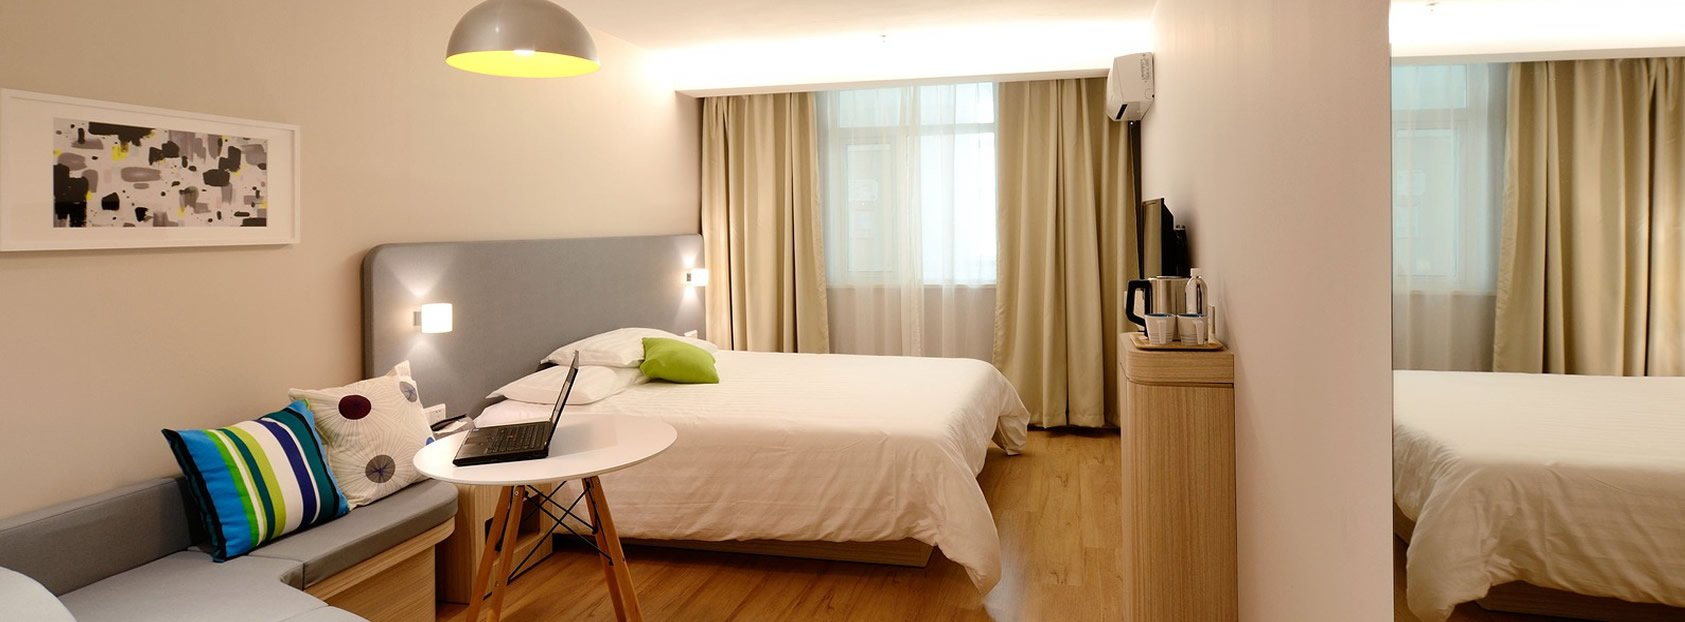 hotel-room-online-booking-system